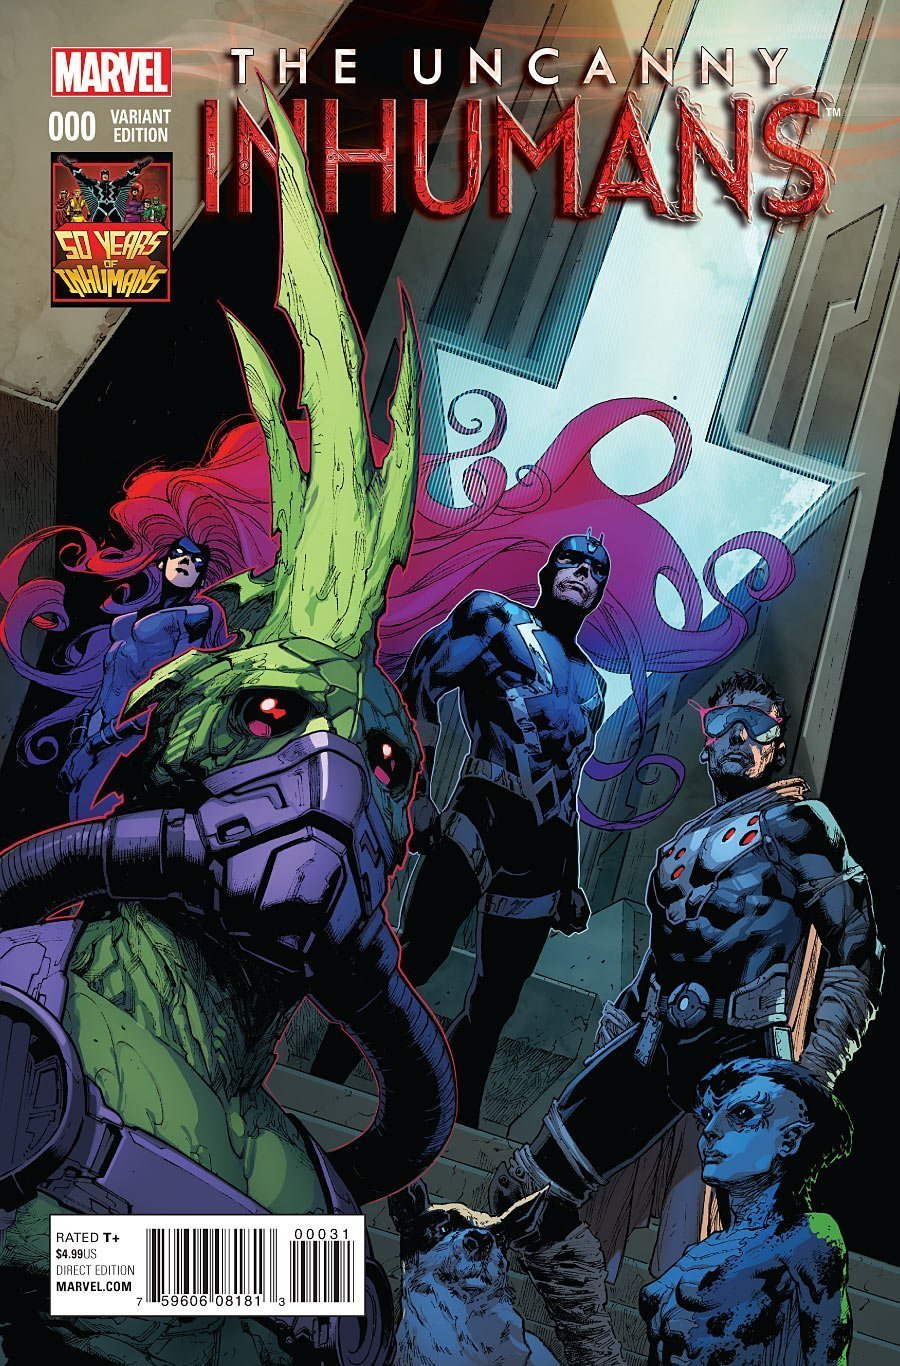 Couverture de The Uncanny Inhumans Vol. 1 0 (50 years of Inhumans variant)